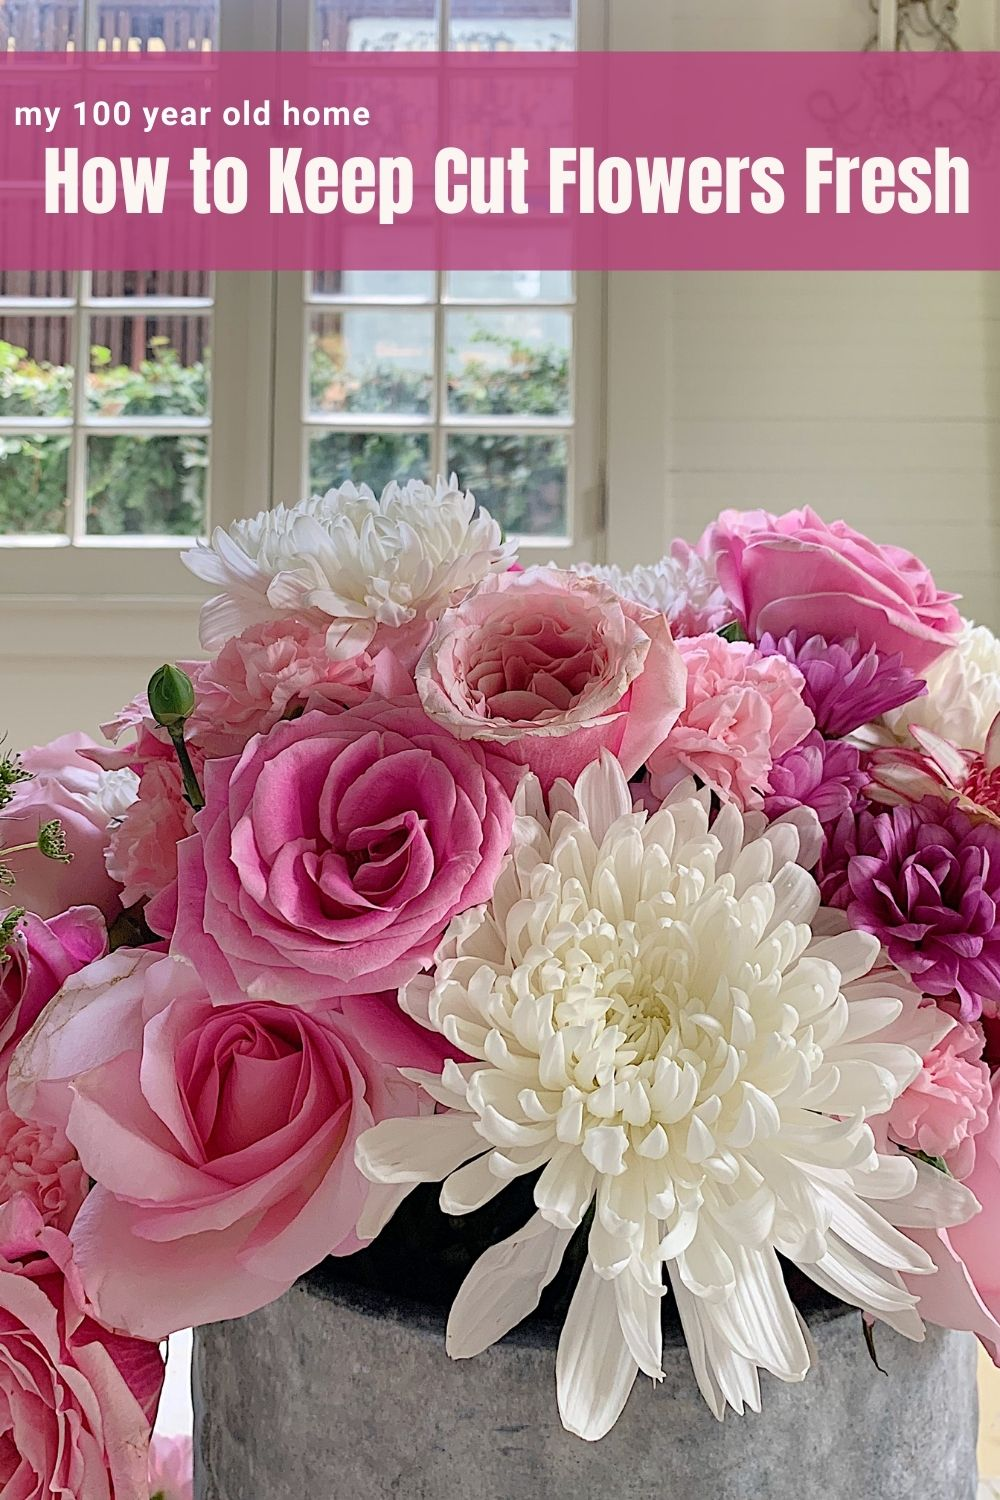 I love to make arrangements with affordable grocery store flowers and today I am sharing how to keep cut flowers fresh.